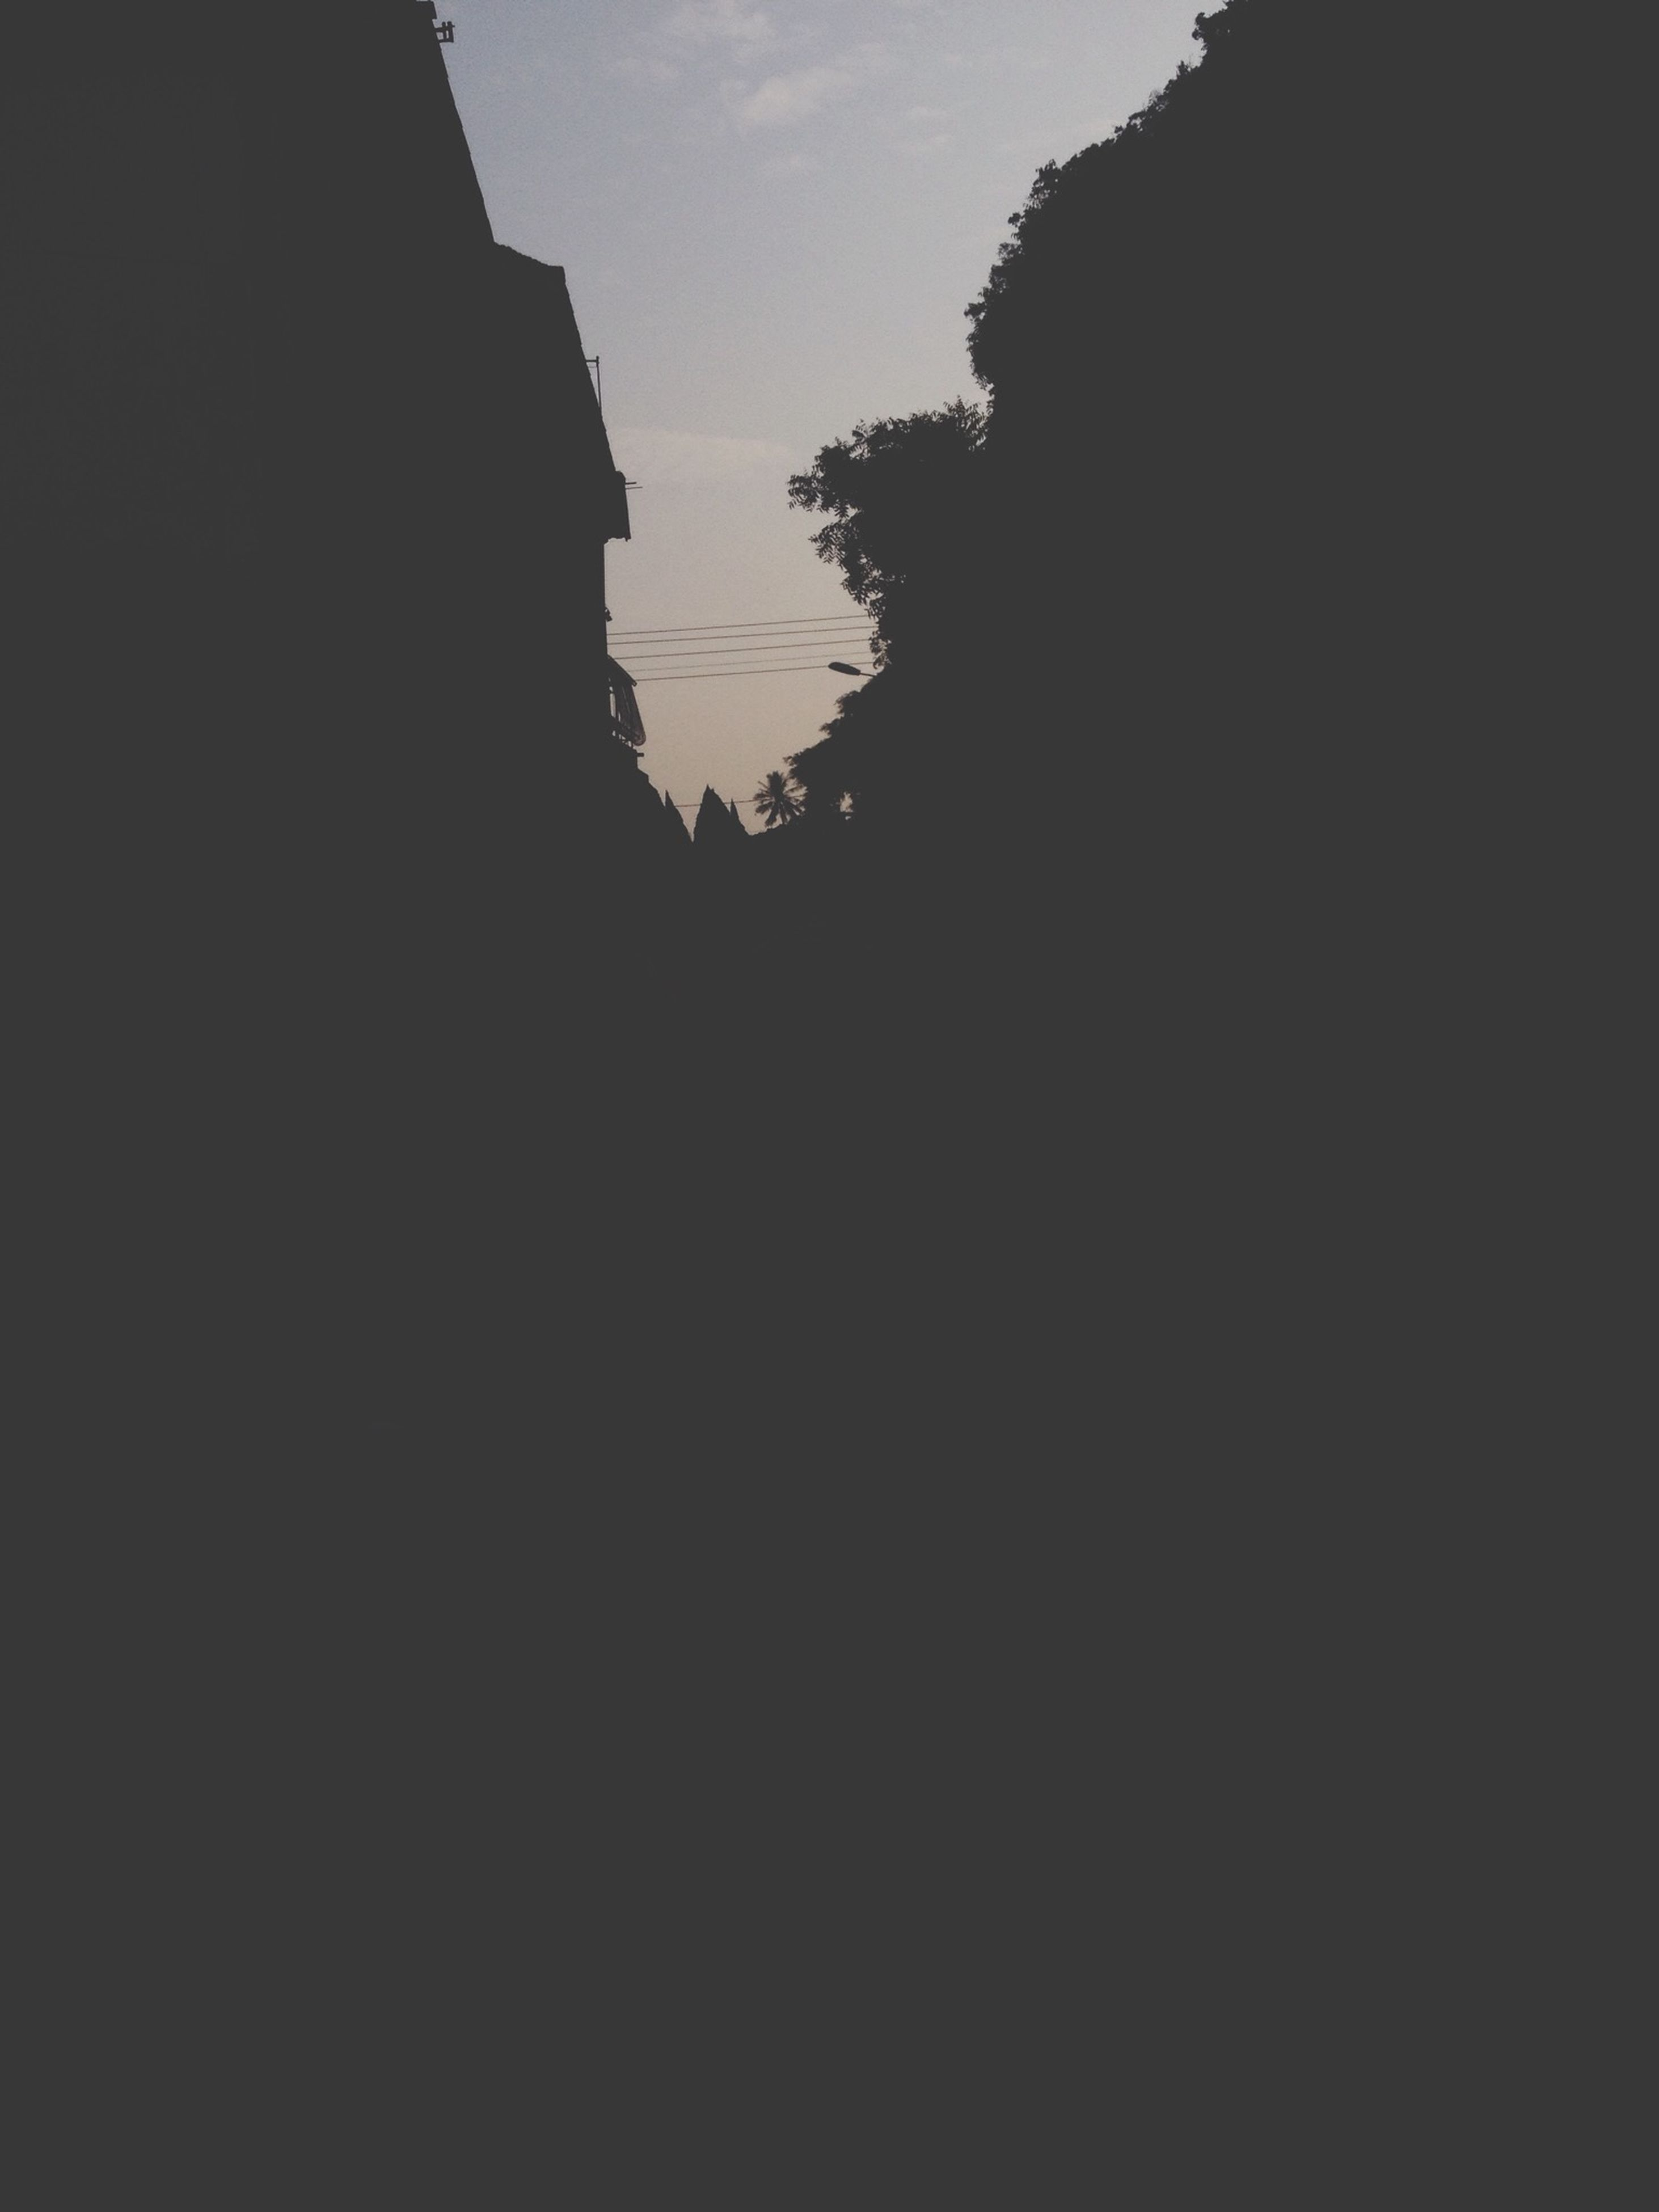 silhouette, sky, tranquility, tranquil scene, beauty in nature, scenics, nature, low angle view, dark, tree, dusk, copy space, outdoors, mountain, no people, idyllic, clear sky, sunset, rock formation, outline